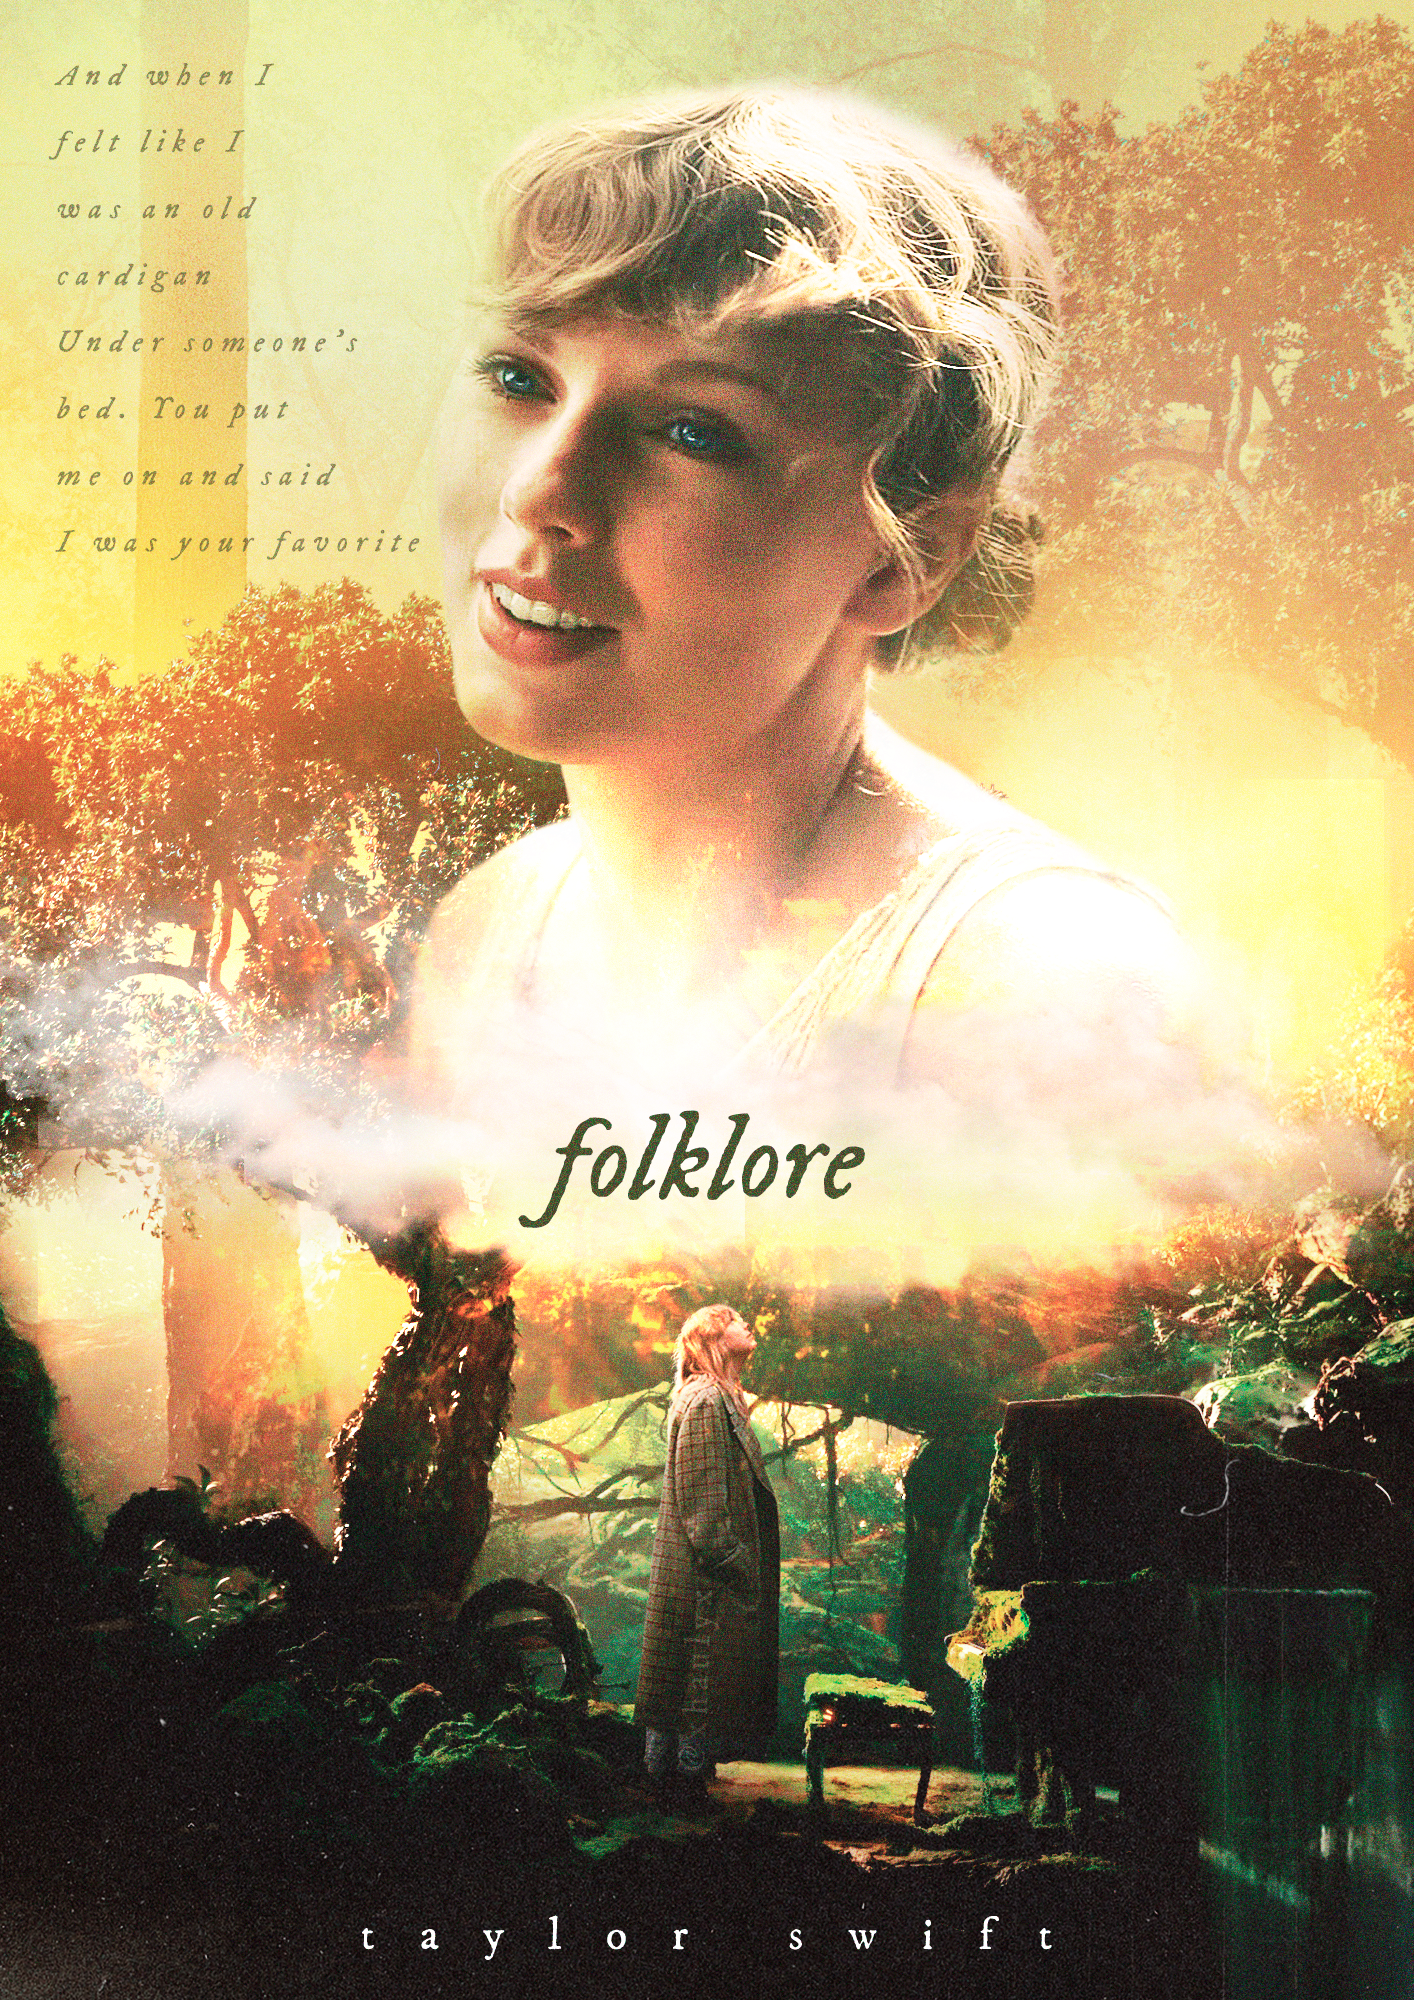 Taylor Swift Folklore Poster Posterspy